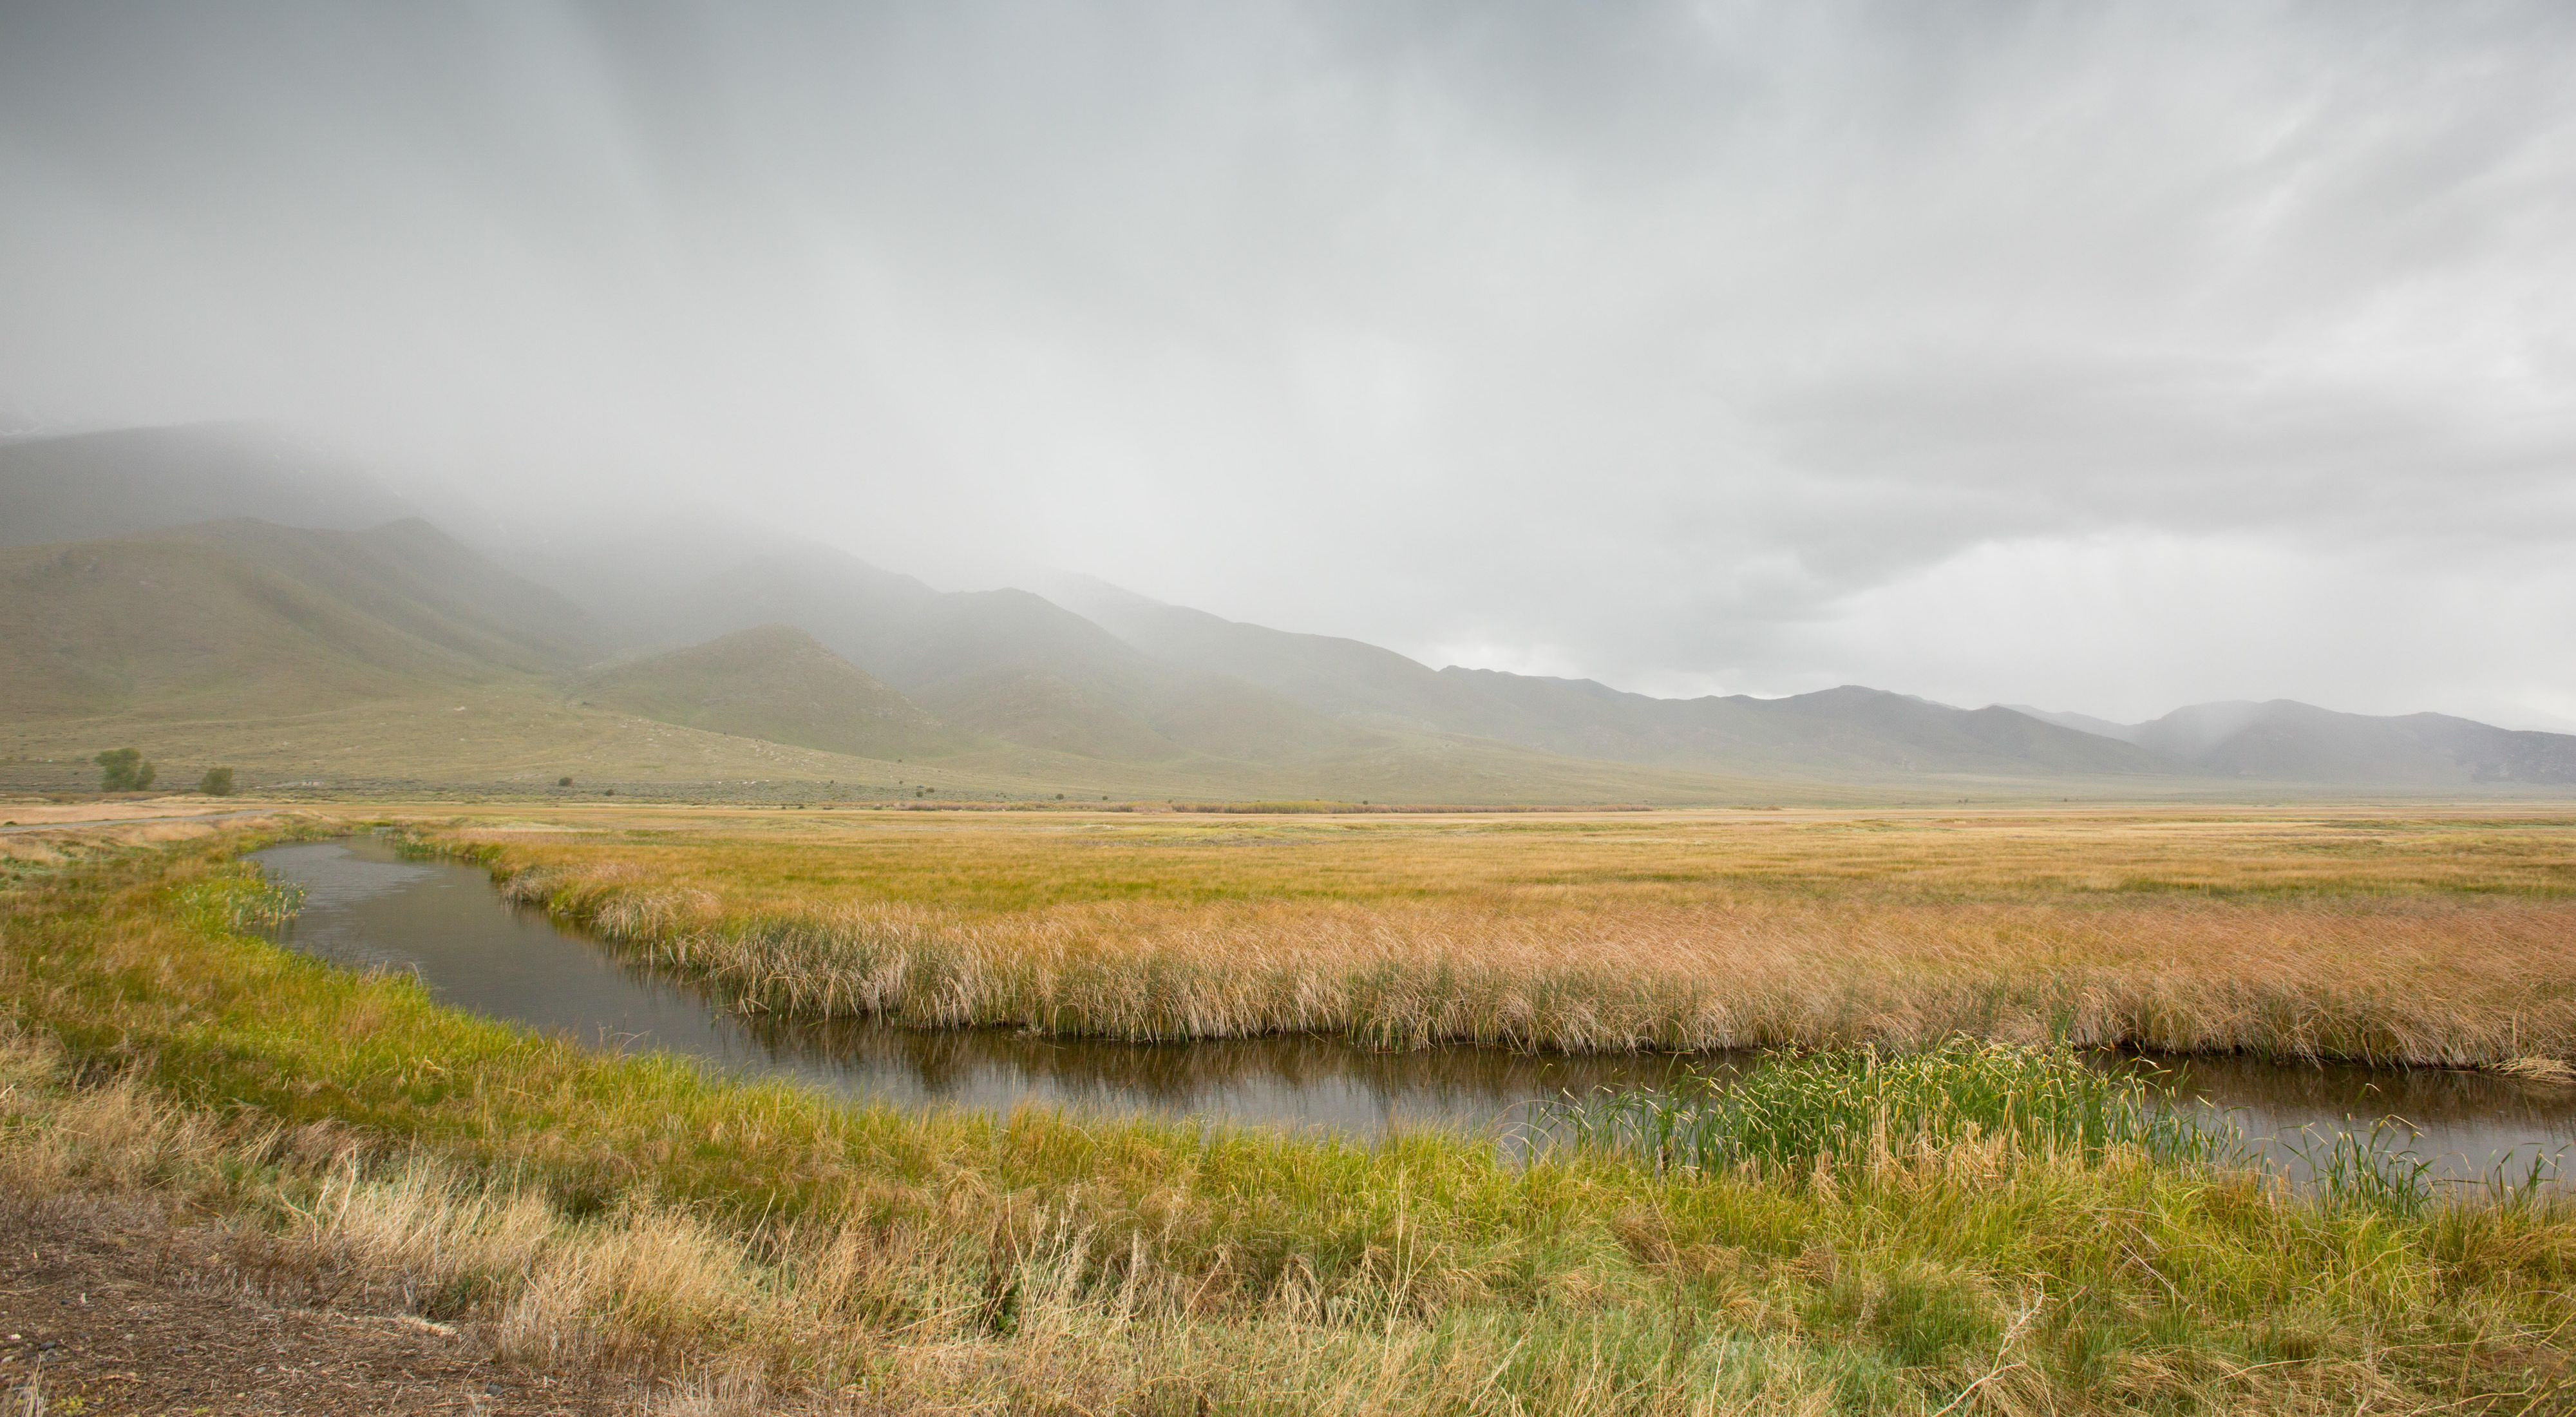 View of a groundwater dependent ecoystem at Ruby Lake National Wildlife Refuge